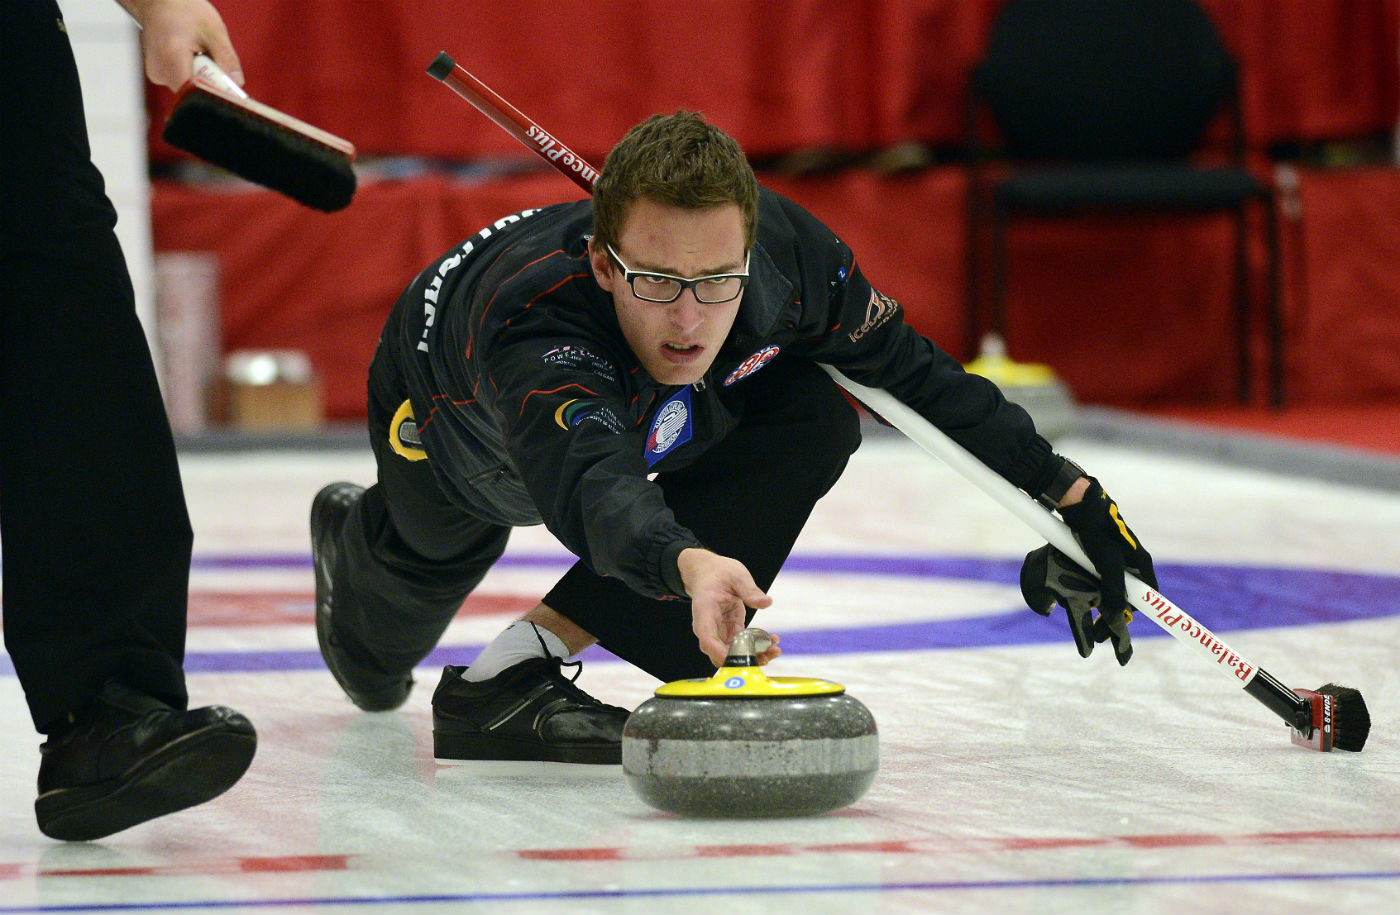 United States Curling Association  Universal Sports to